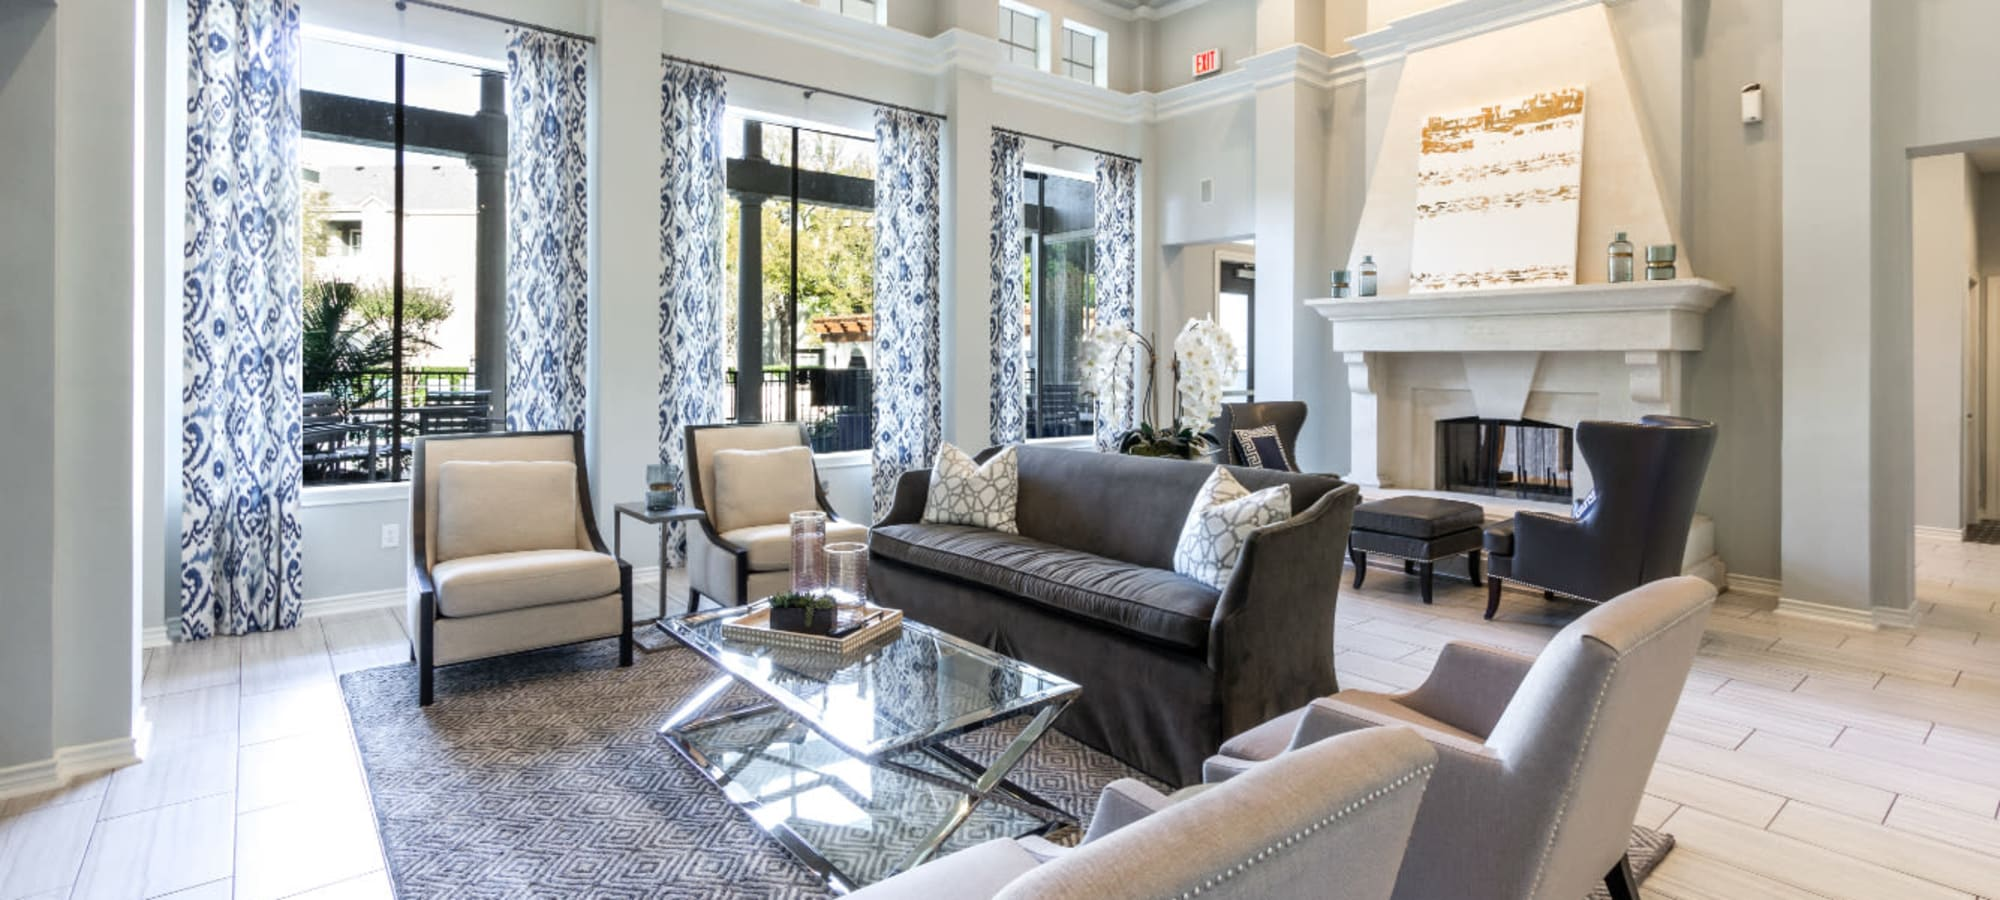 Schedule a tour of Marquis at Stonegate in Fort Worth, Texas